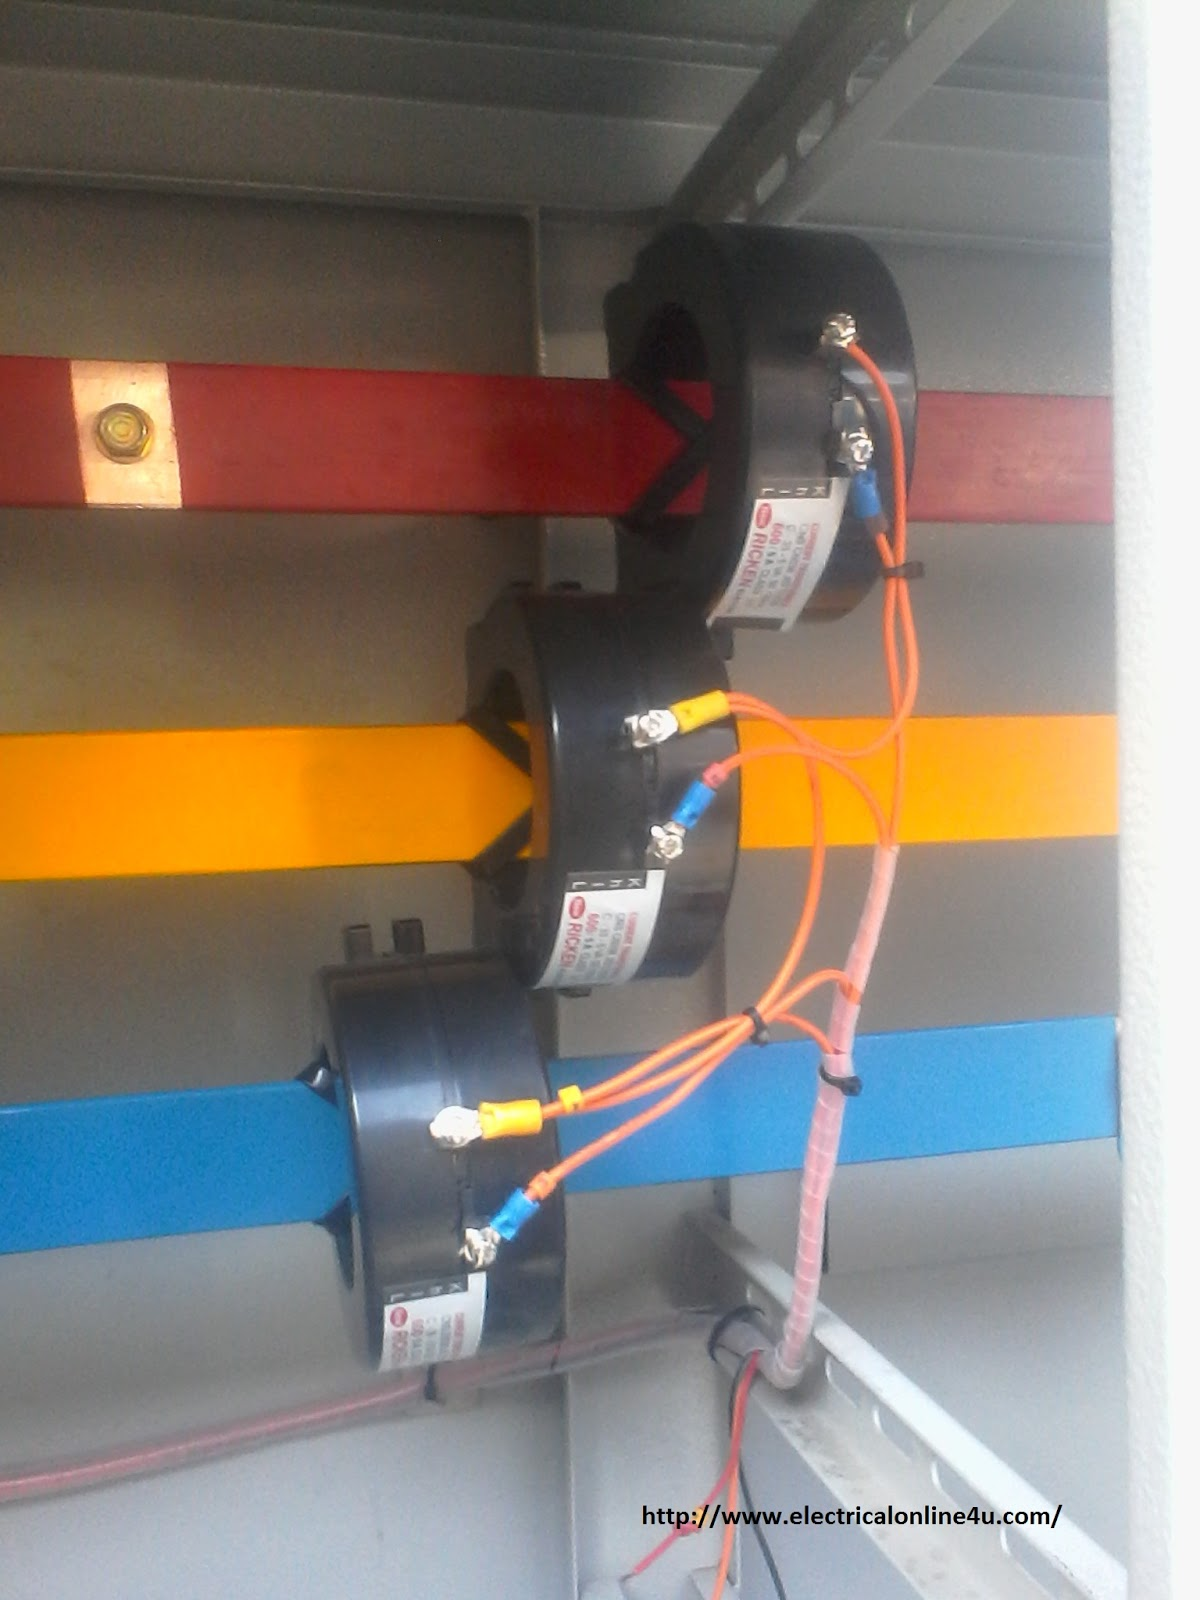 current%2Btransformer%2Binstillation%2Bfor%2Bthree%2Bphase%2Bwiring current transformer installation for three phase power supply ct three phase transformer wiring diagram at webbmarketing.co